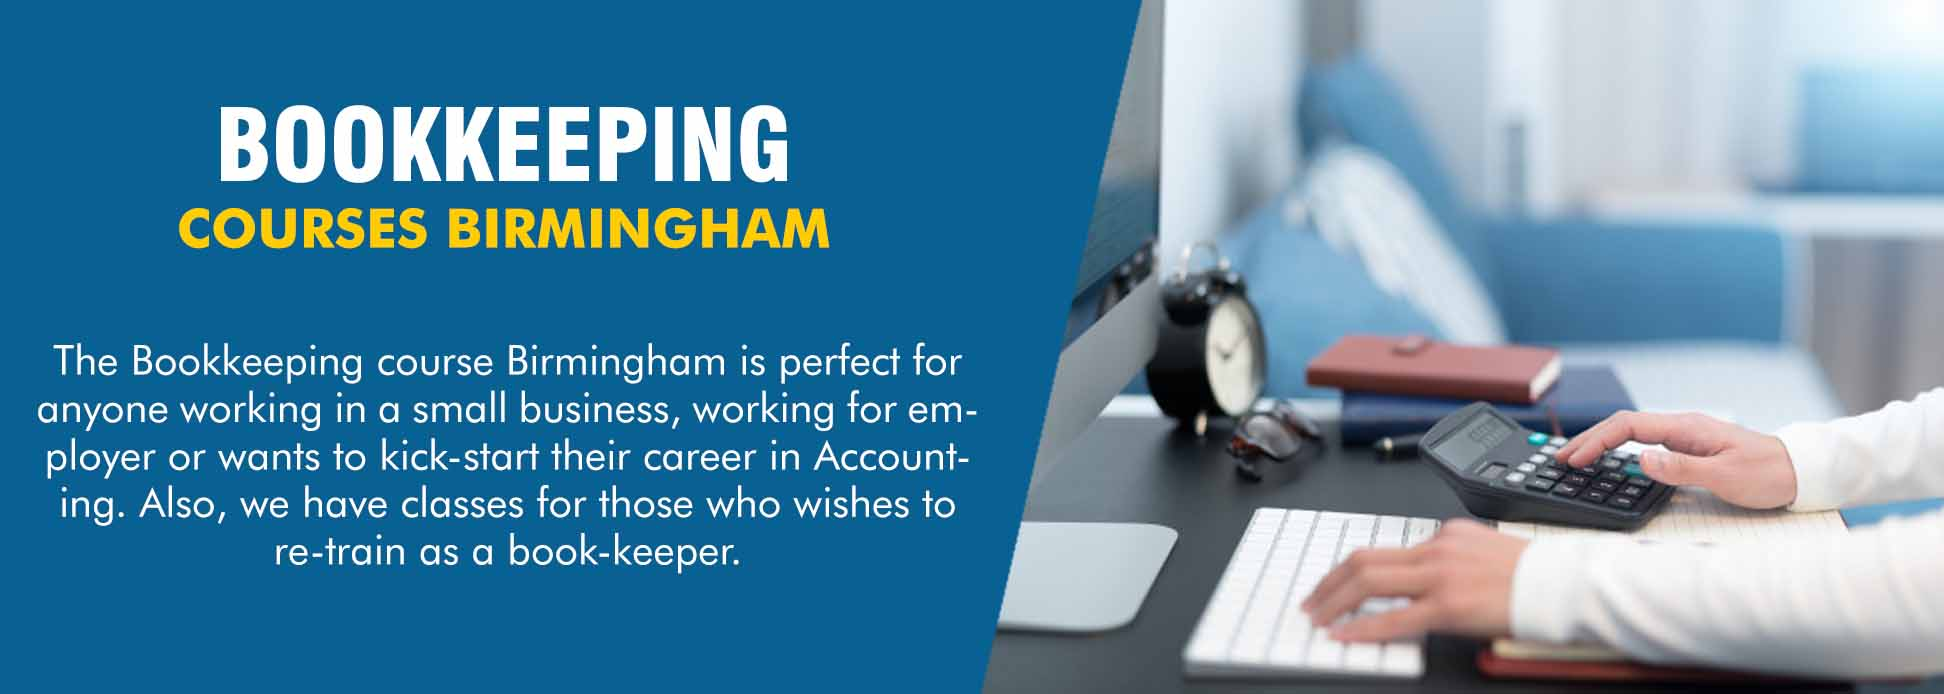 bookkeeping-course-birmingham